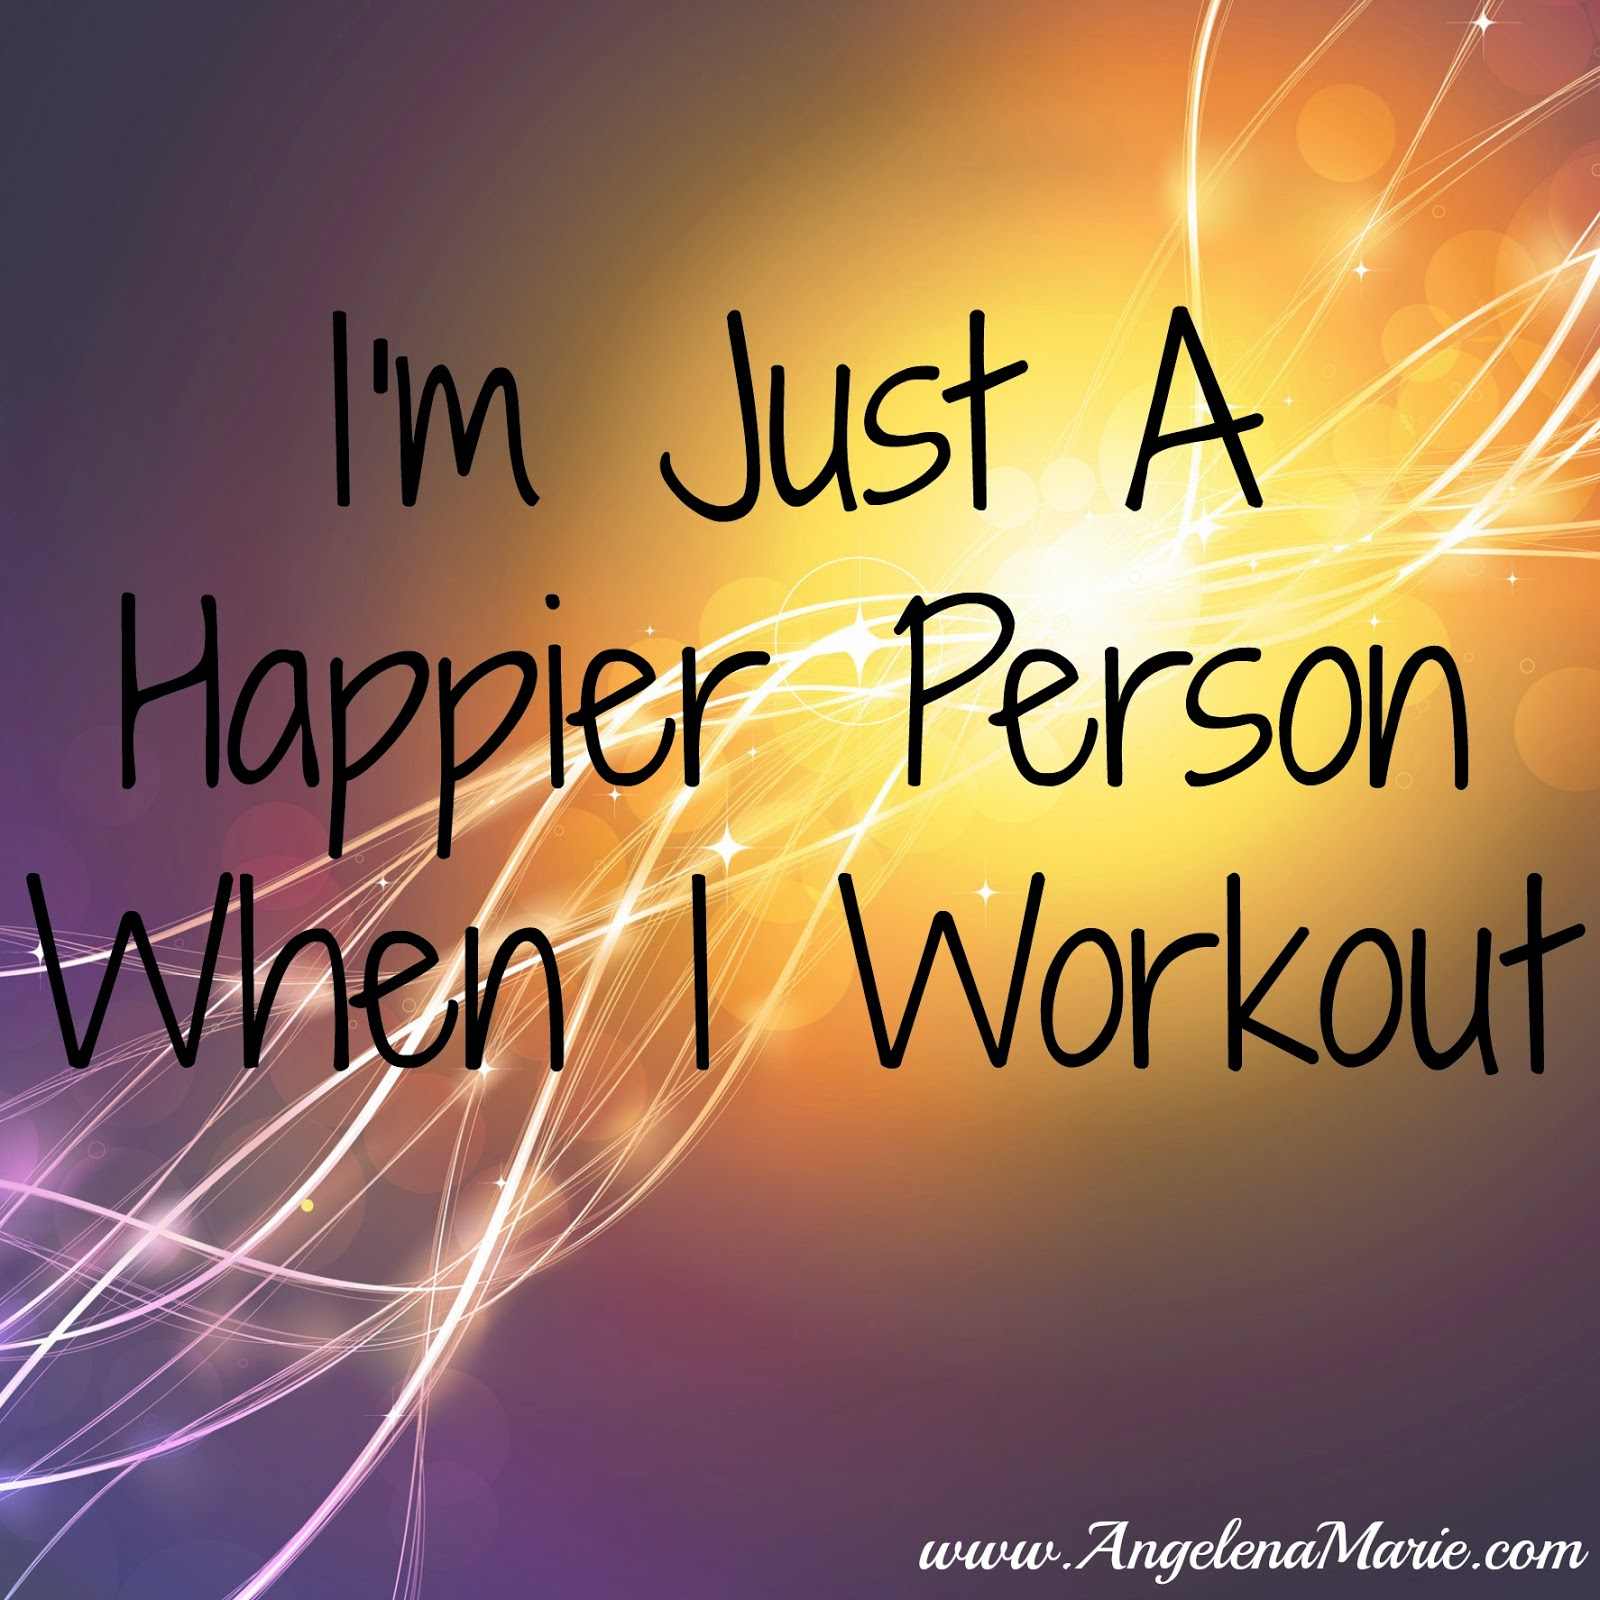 Morning Workout Quotes Angelena Marie Happy Healthy & Balanced  Workout For A Happier